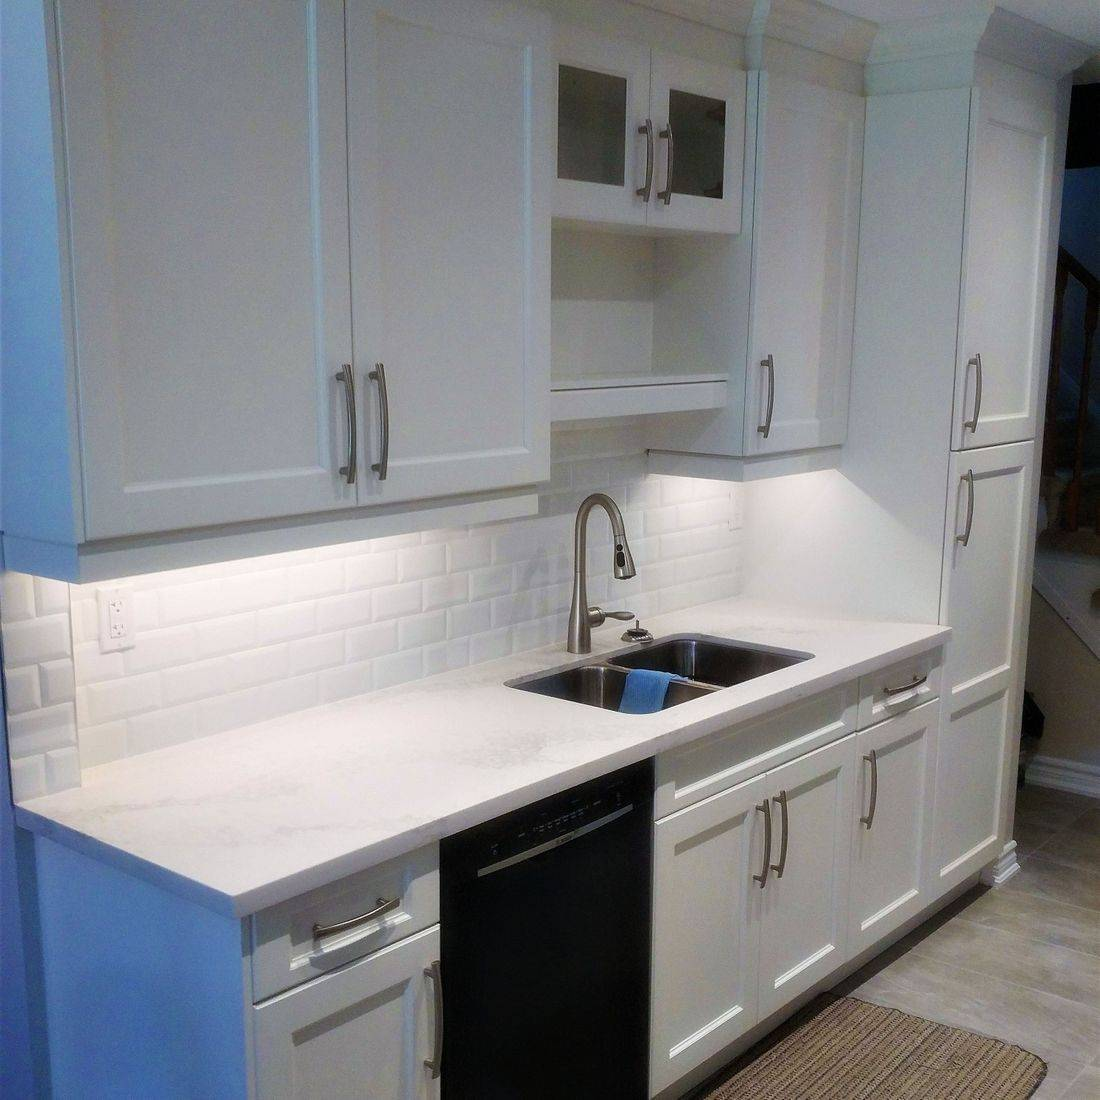 Sibra Kitchens Markham Toronto white maple shaker cabinets